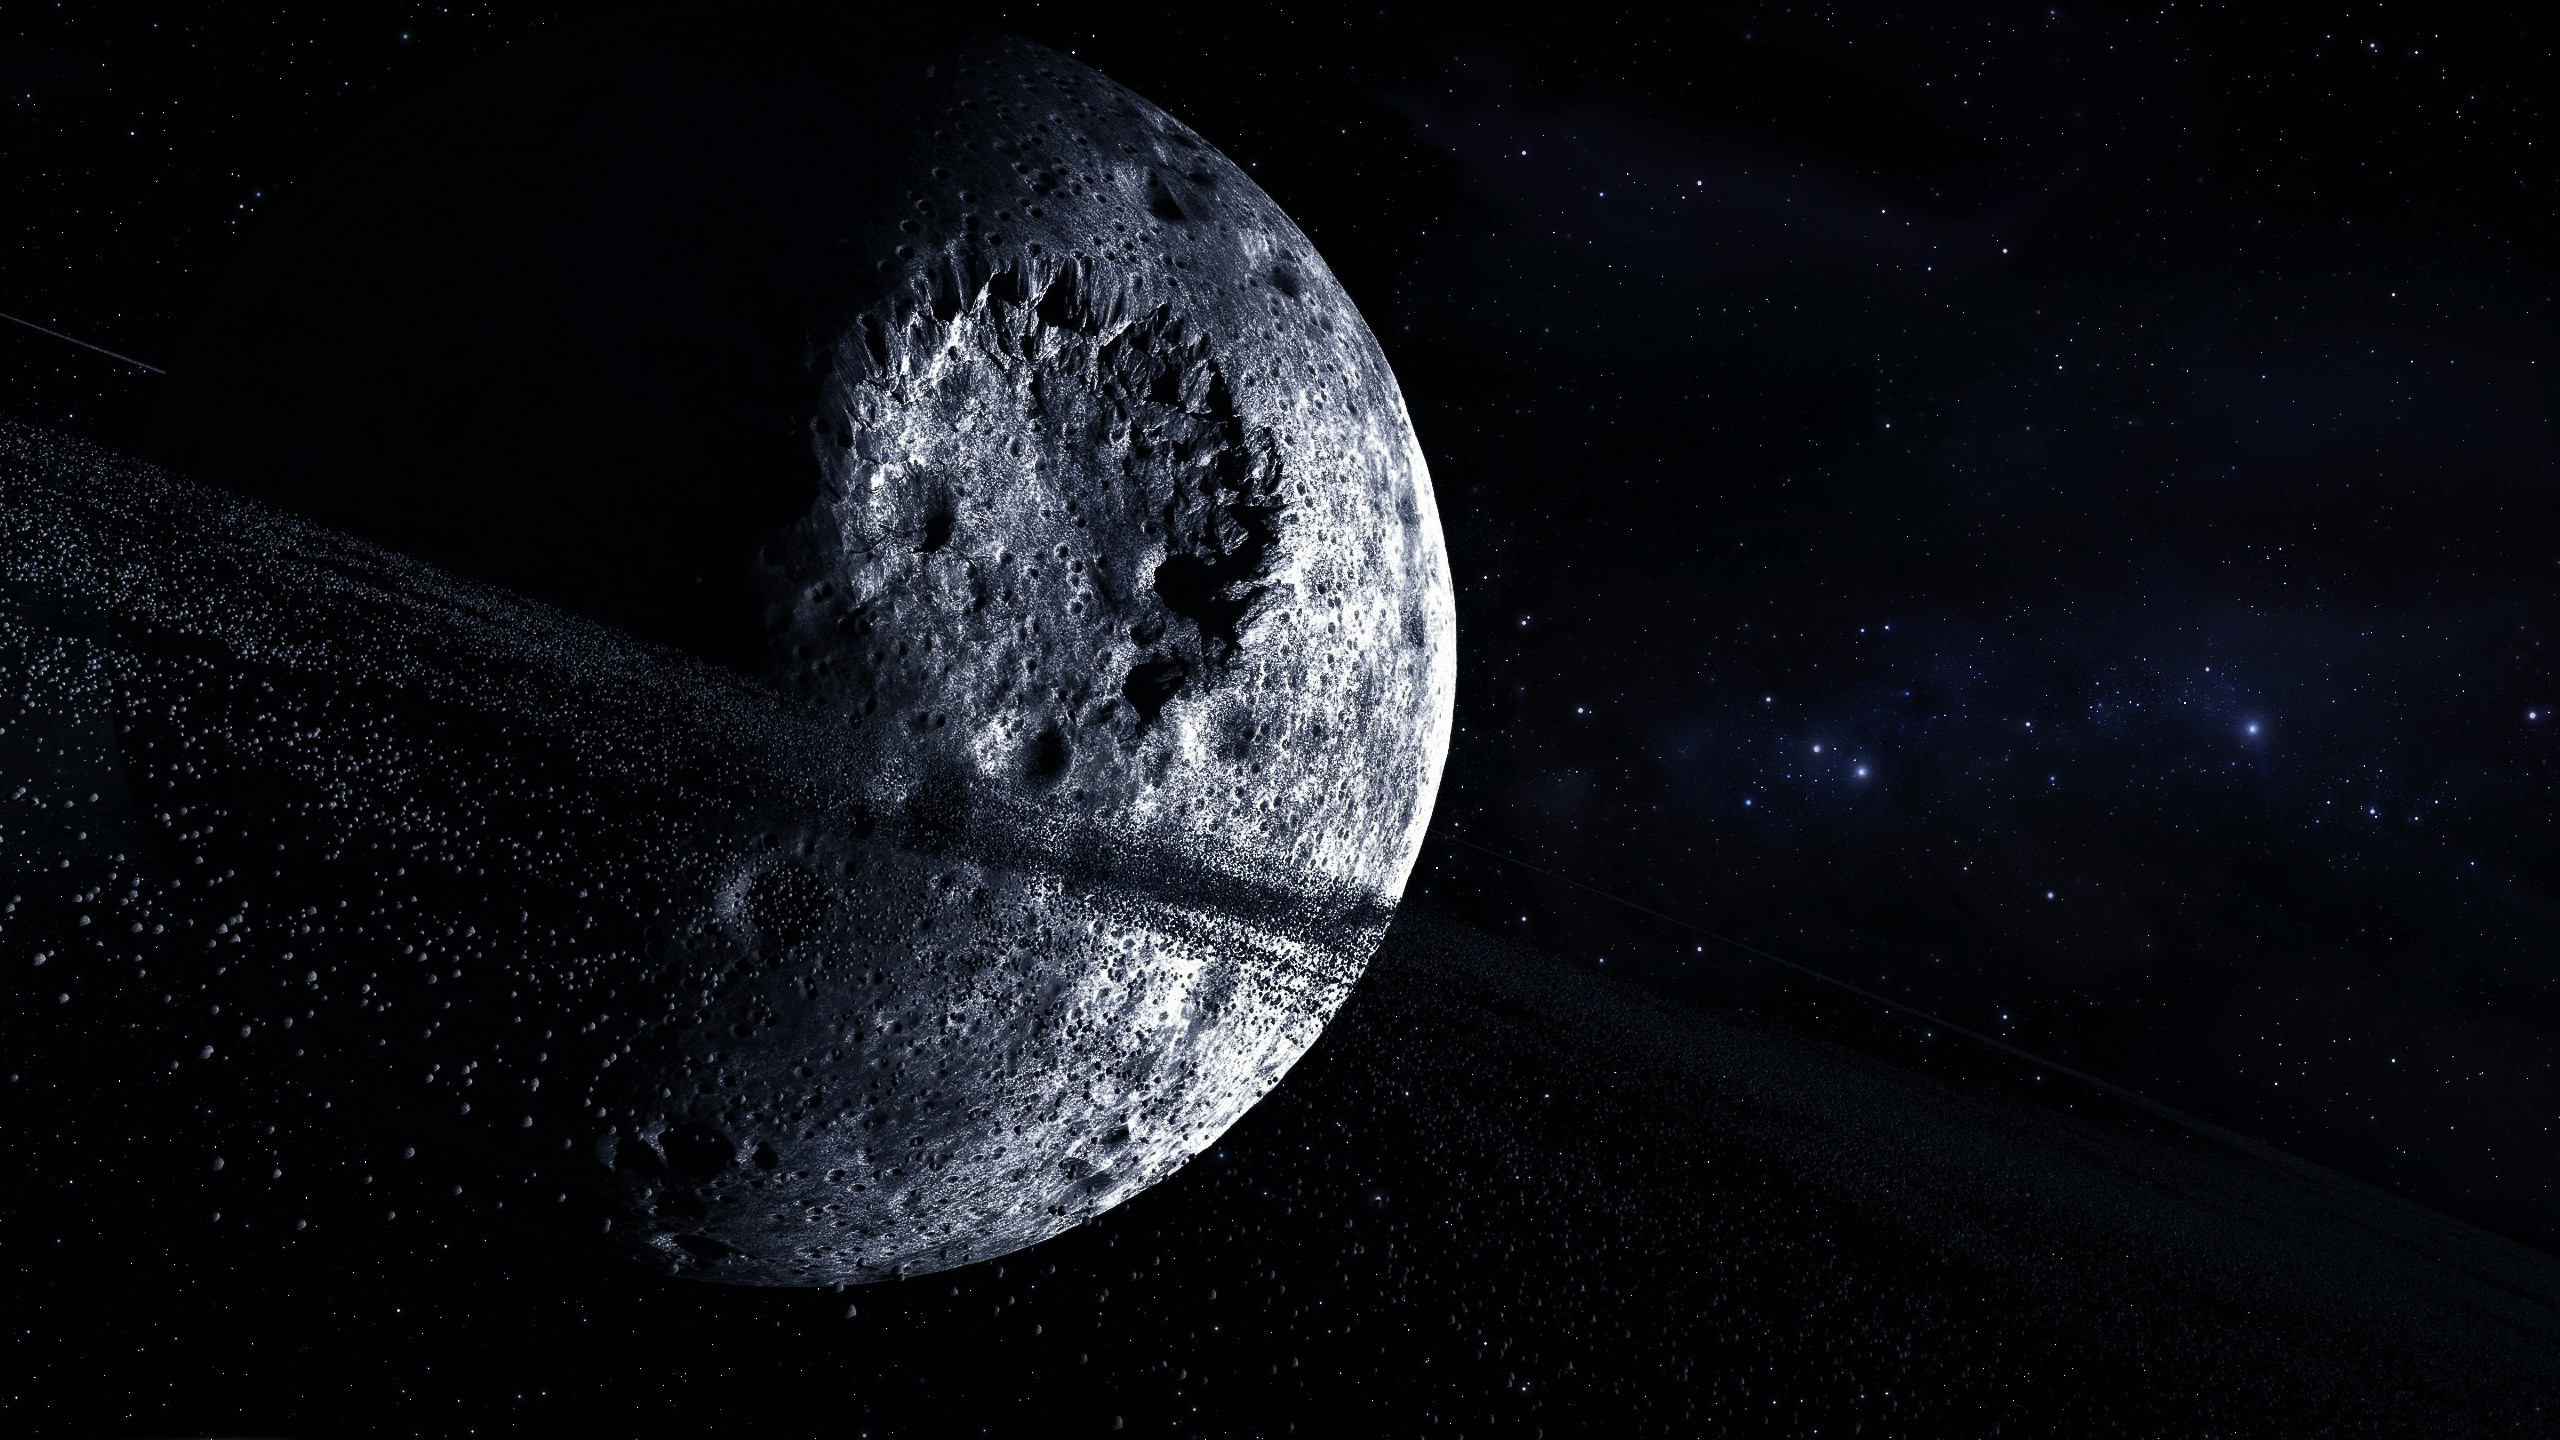 2560x1440 Outer space stars moon crater digital art wallpaper